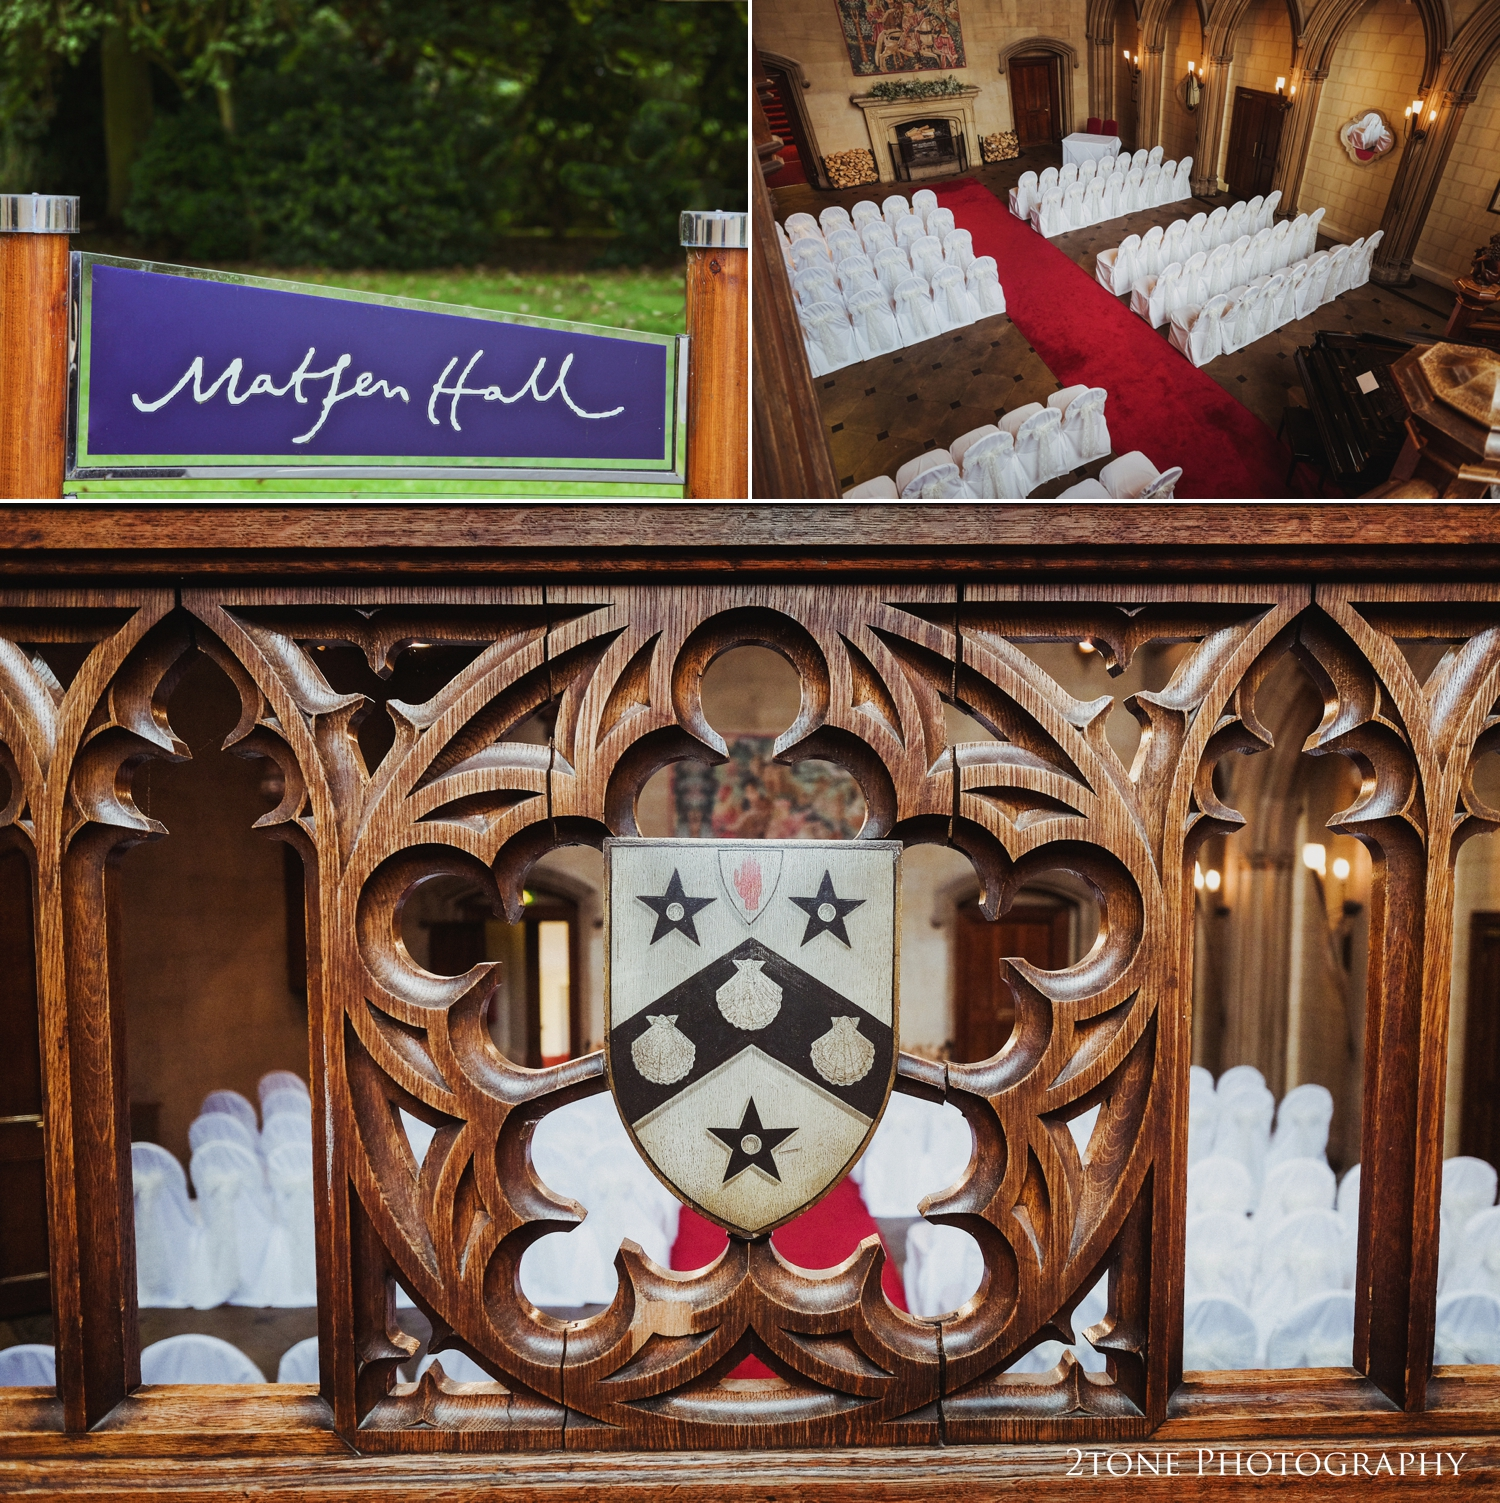 Natalie and Russell told me that Matfen Hall's gothic great hall with it'stowering stained glass window, grand staircase and architectural stone archesreminded them of the ballroom indisney's classic 'Beauty and the Beast' and as soon as they stepped inside, they knew it would be the perfect place for their wedding.